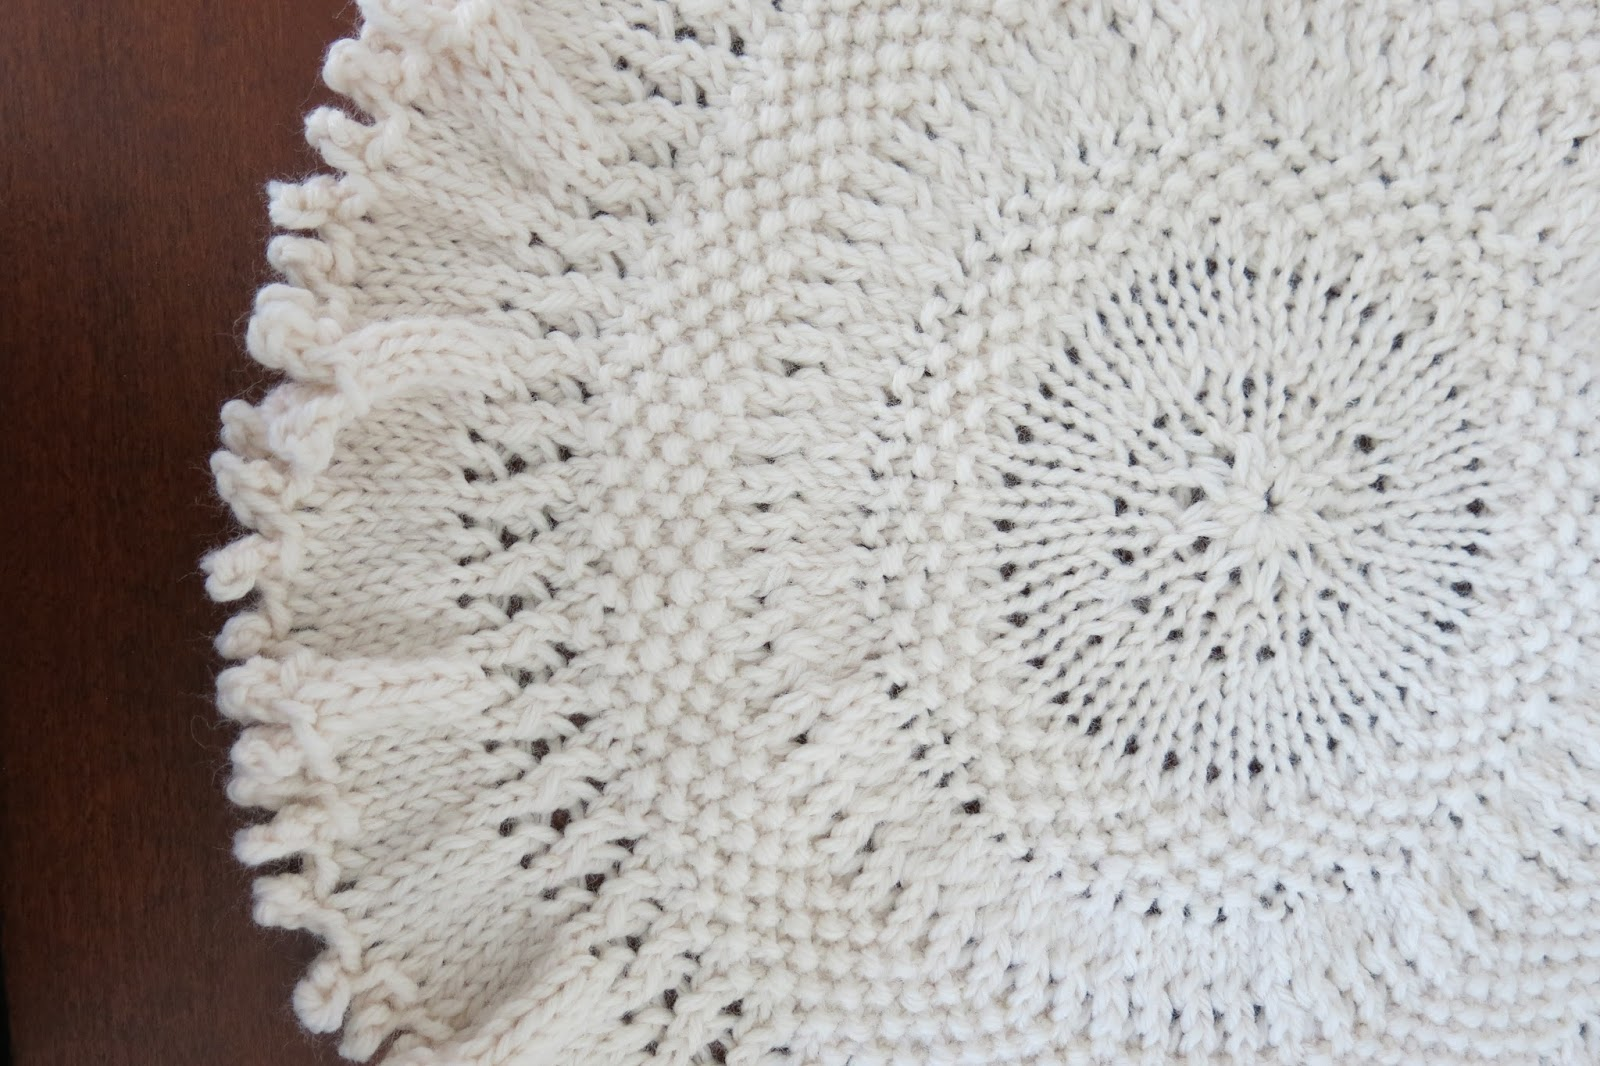 Knit Tree Skirt Pattern : The Fuzzy Lounge: Free Knitting Pattern: Tree Skirt (or Doily) for Table-Top ...